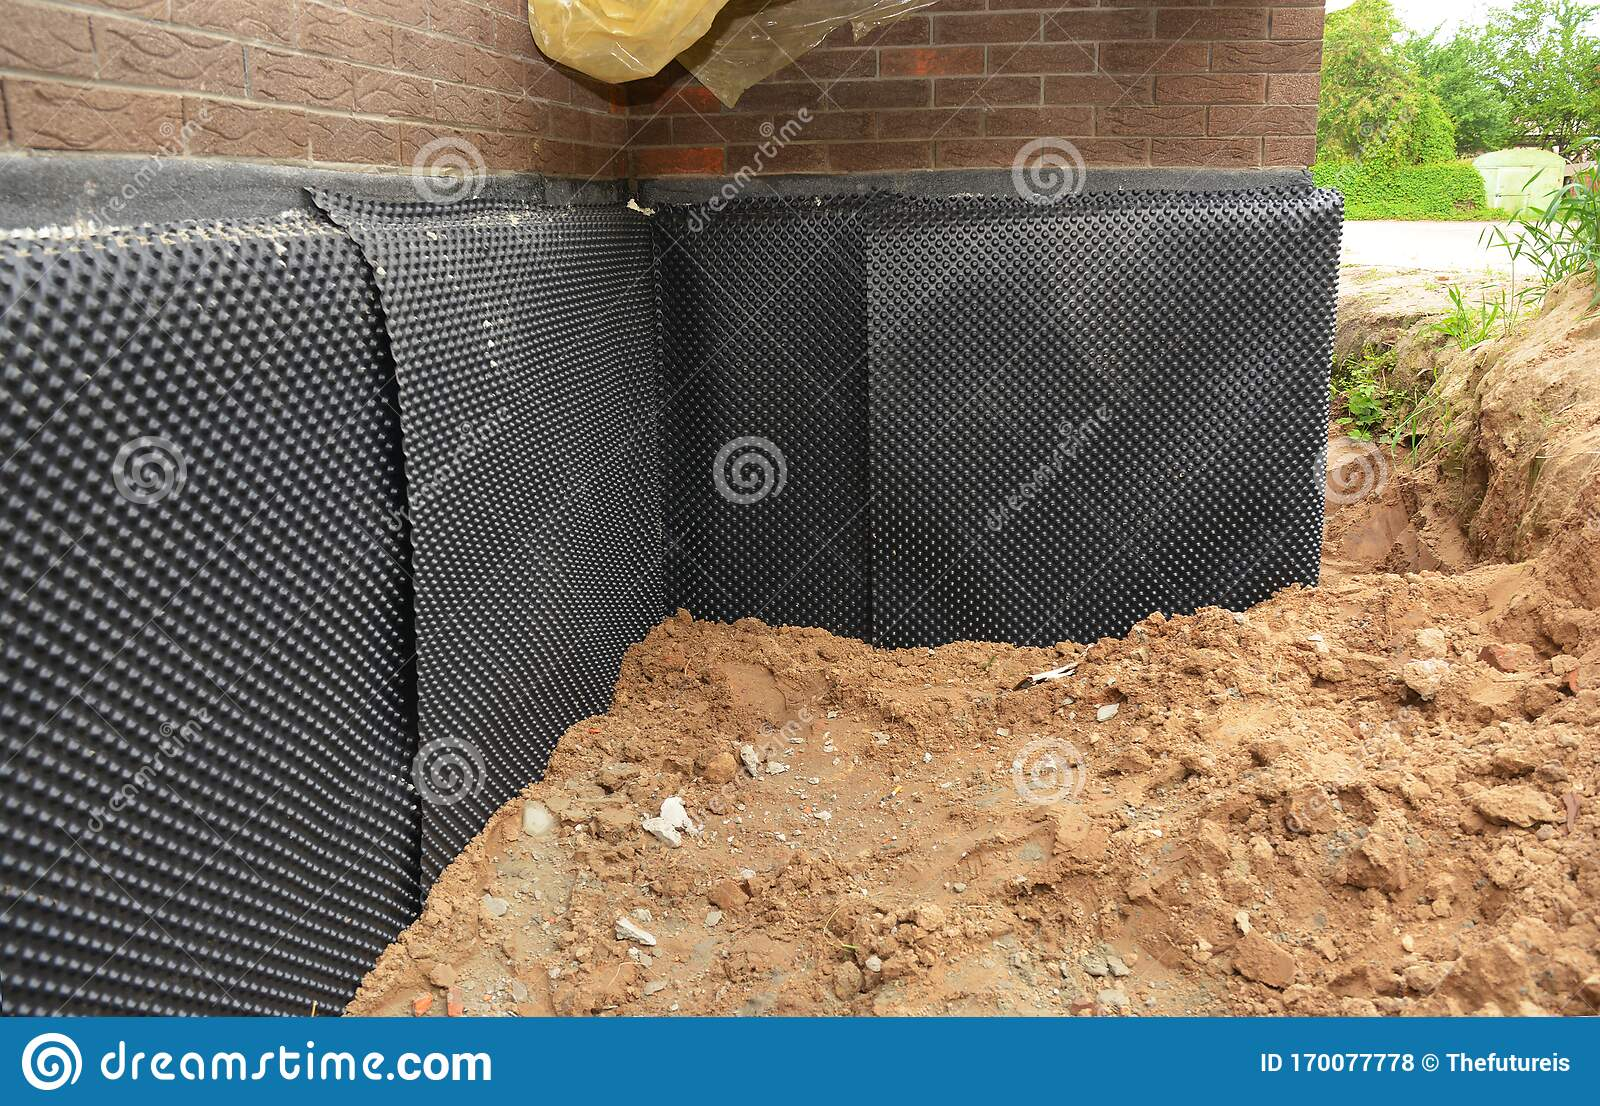 Foundation Foam Insulation With Bitumen Waterproofing Damp Proofing On The House Foundation Wall Stock Photo Image Of House Passive 170077778